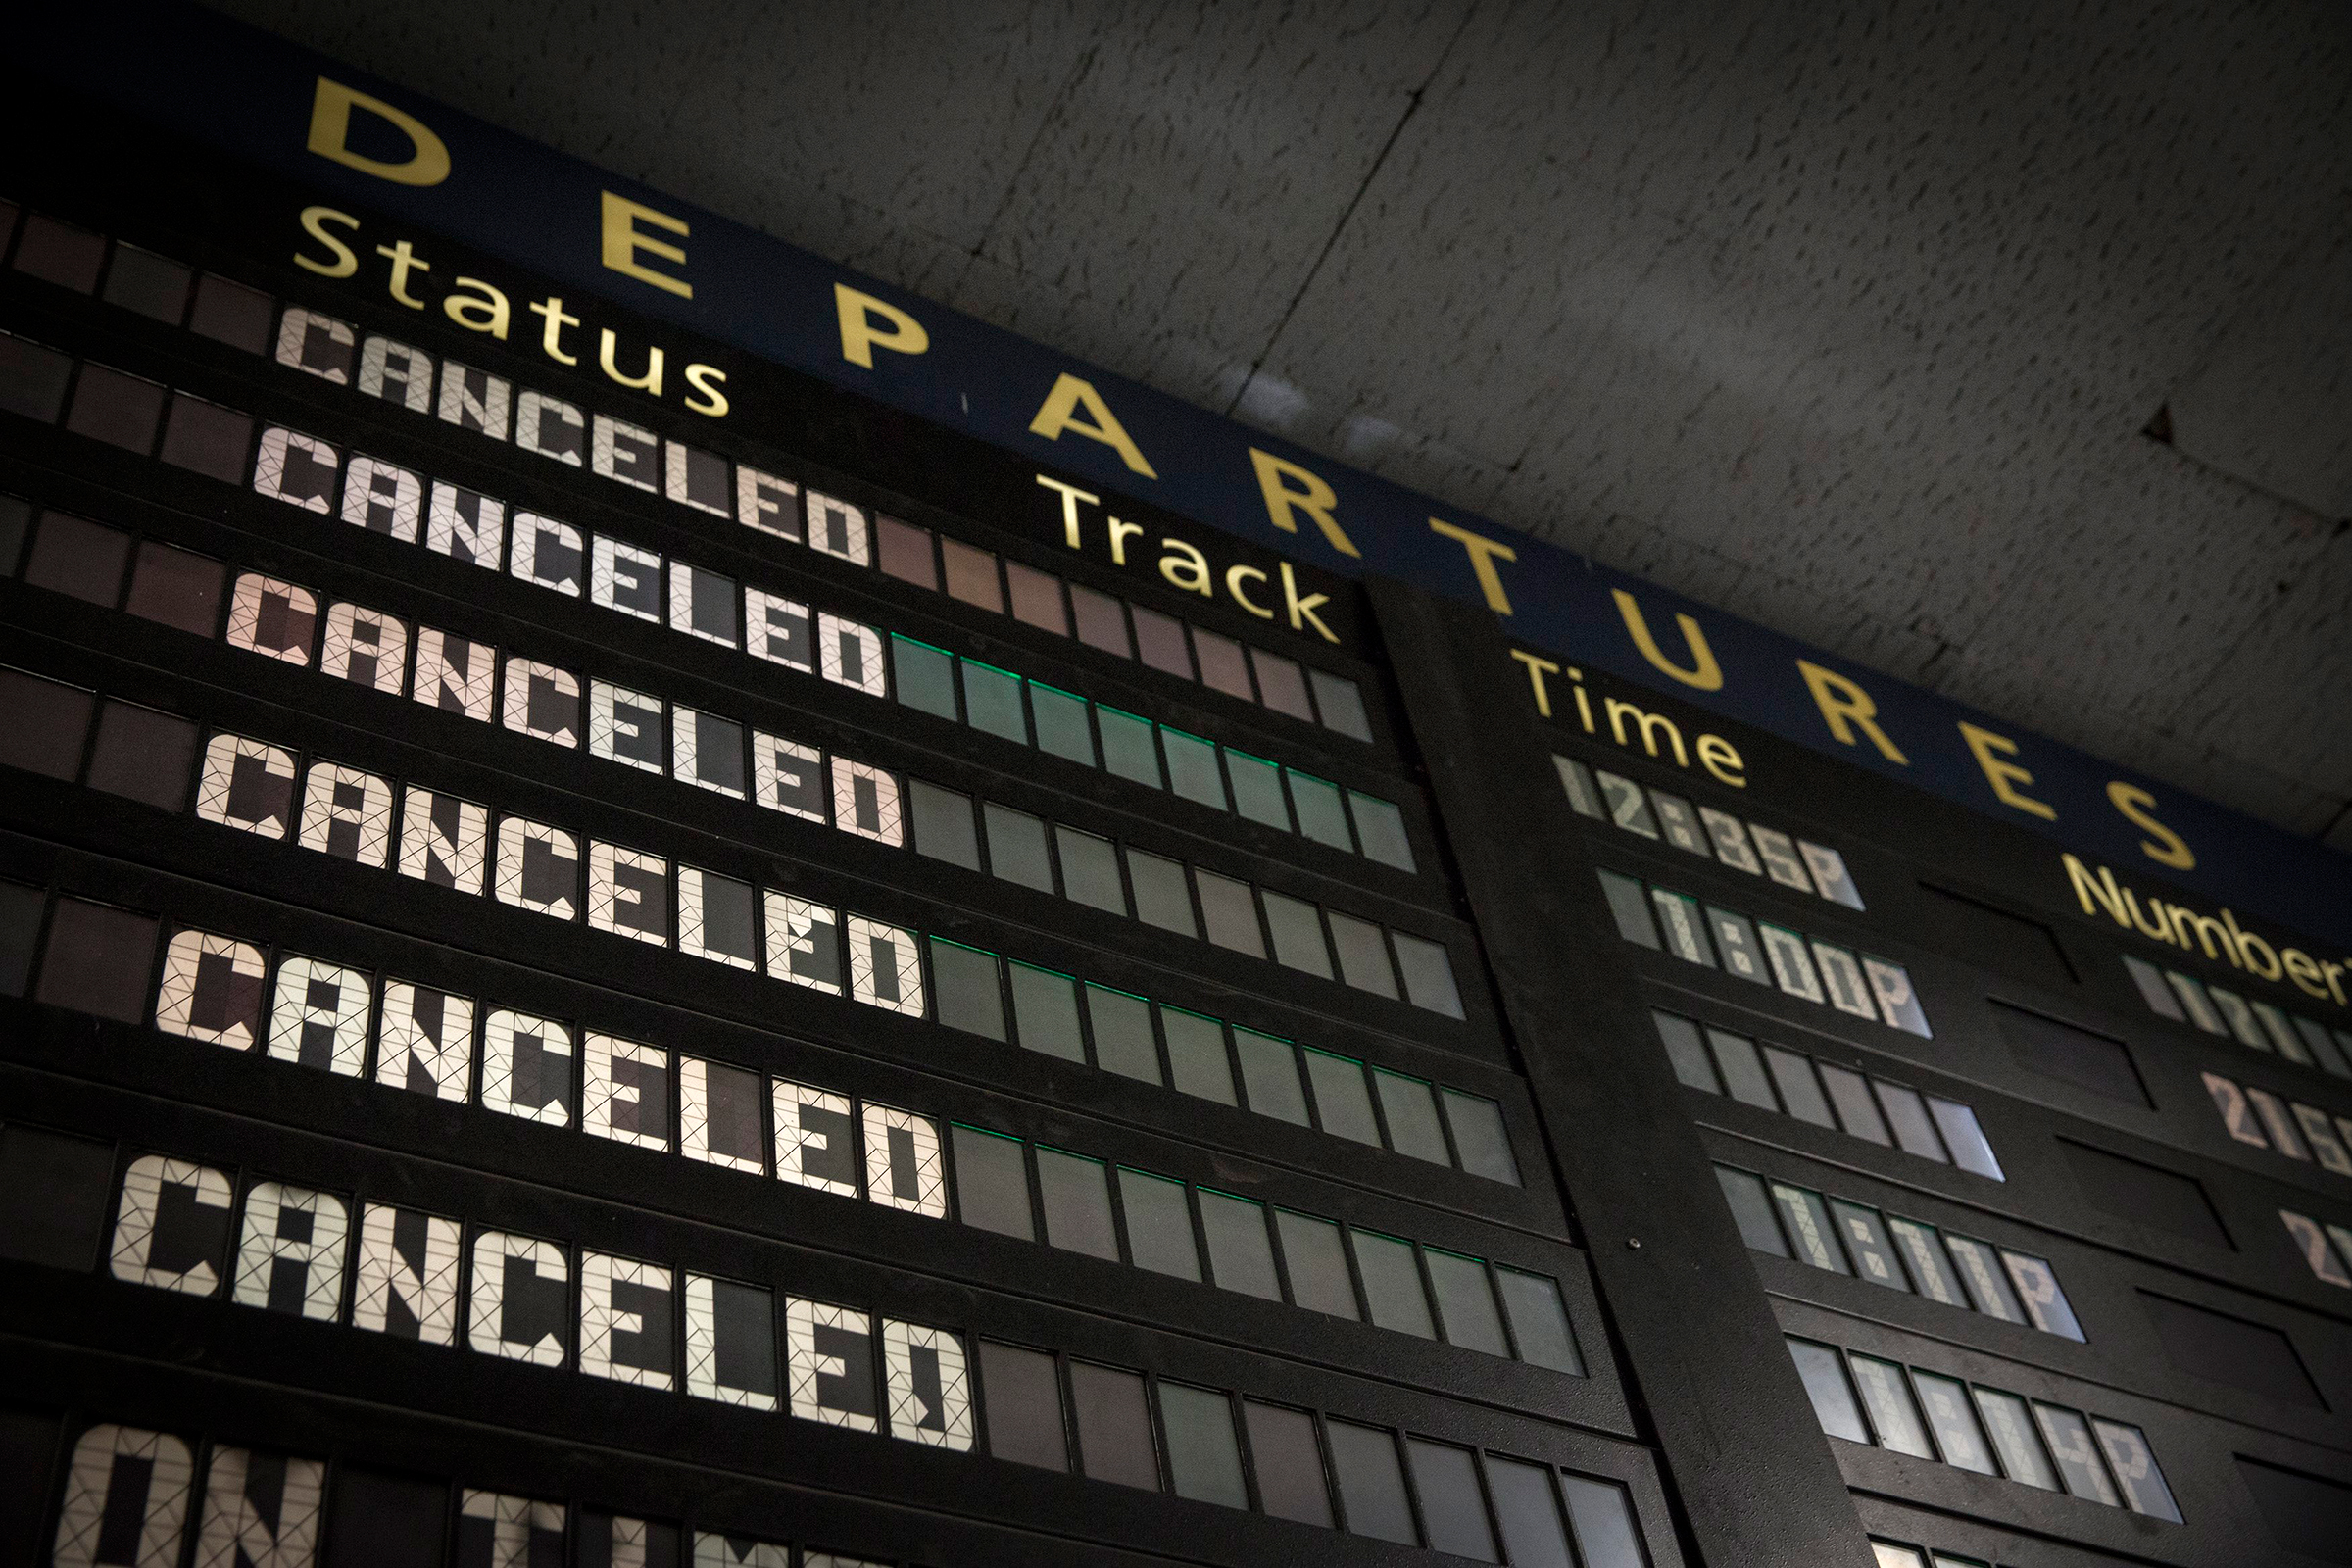 Cancelled-Departure-Board.jpg